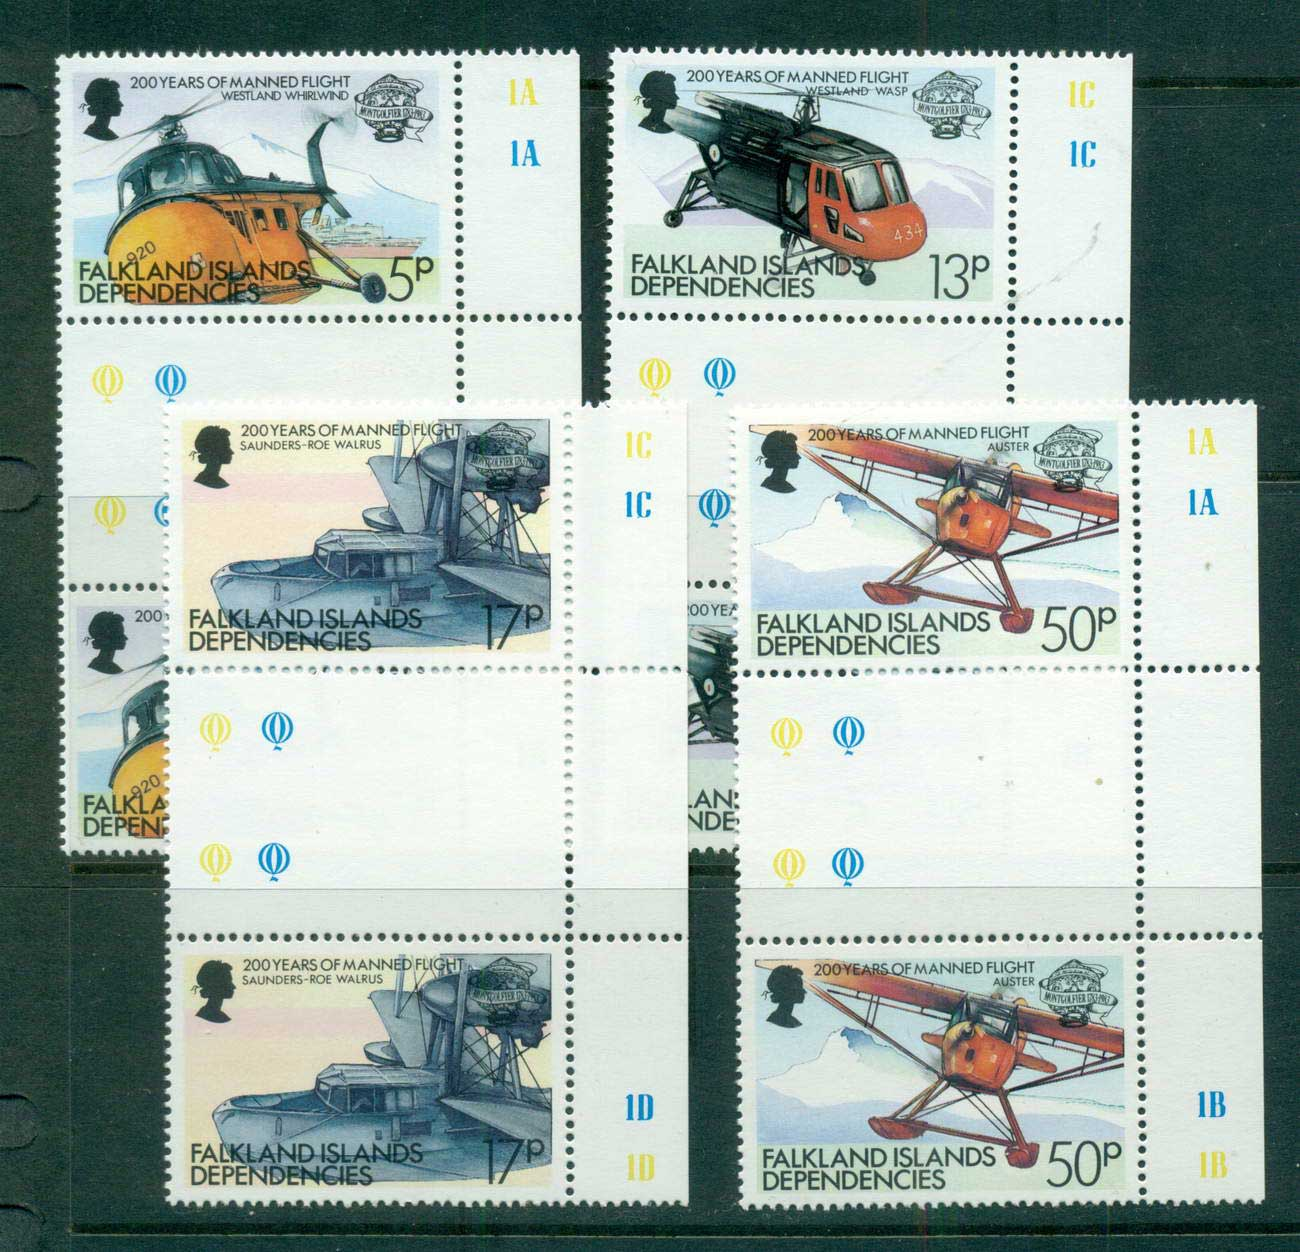 Falkland Is Deps 1983 Manned Flight Anniv. Gutter prs. MUH lot58862